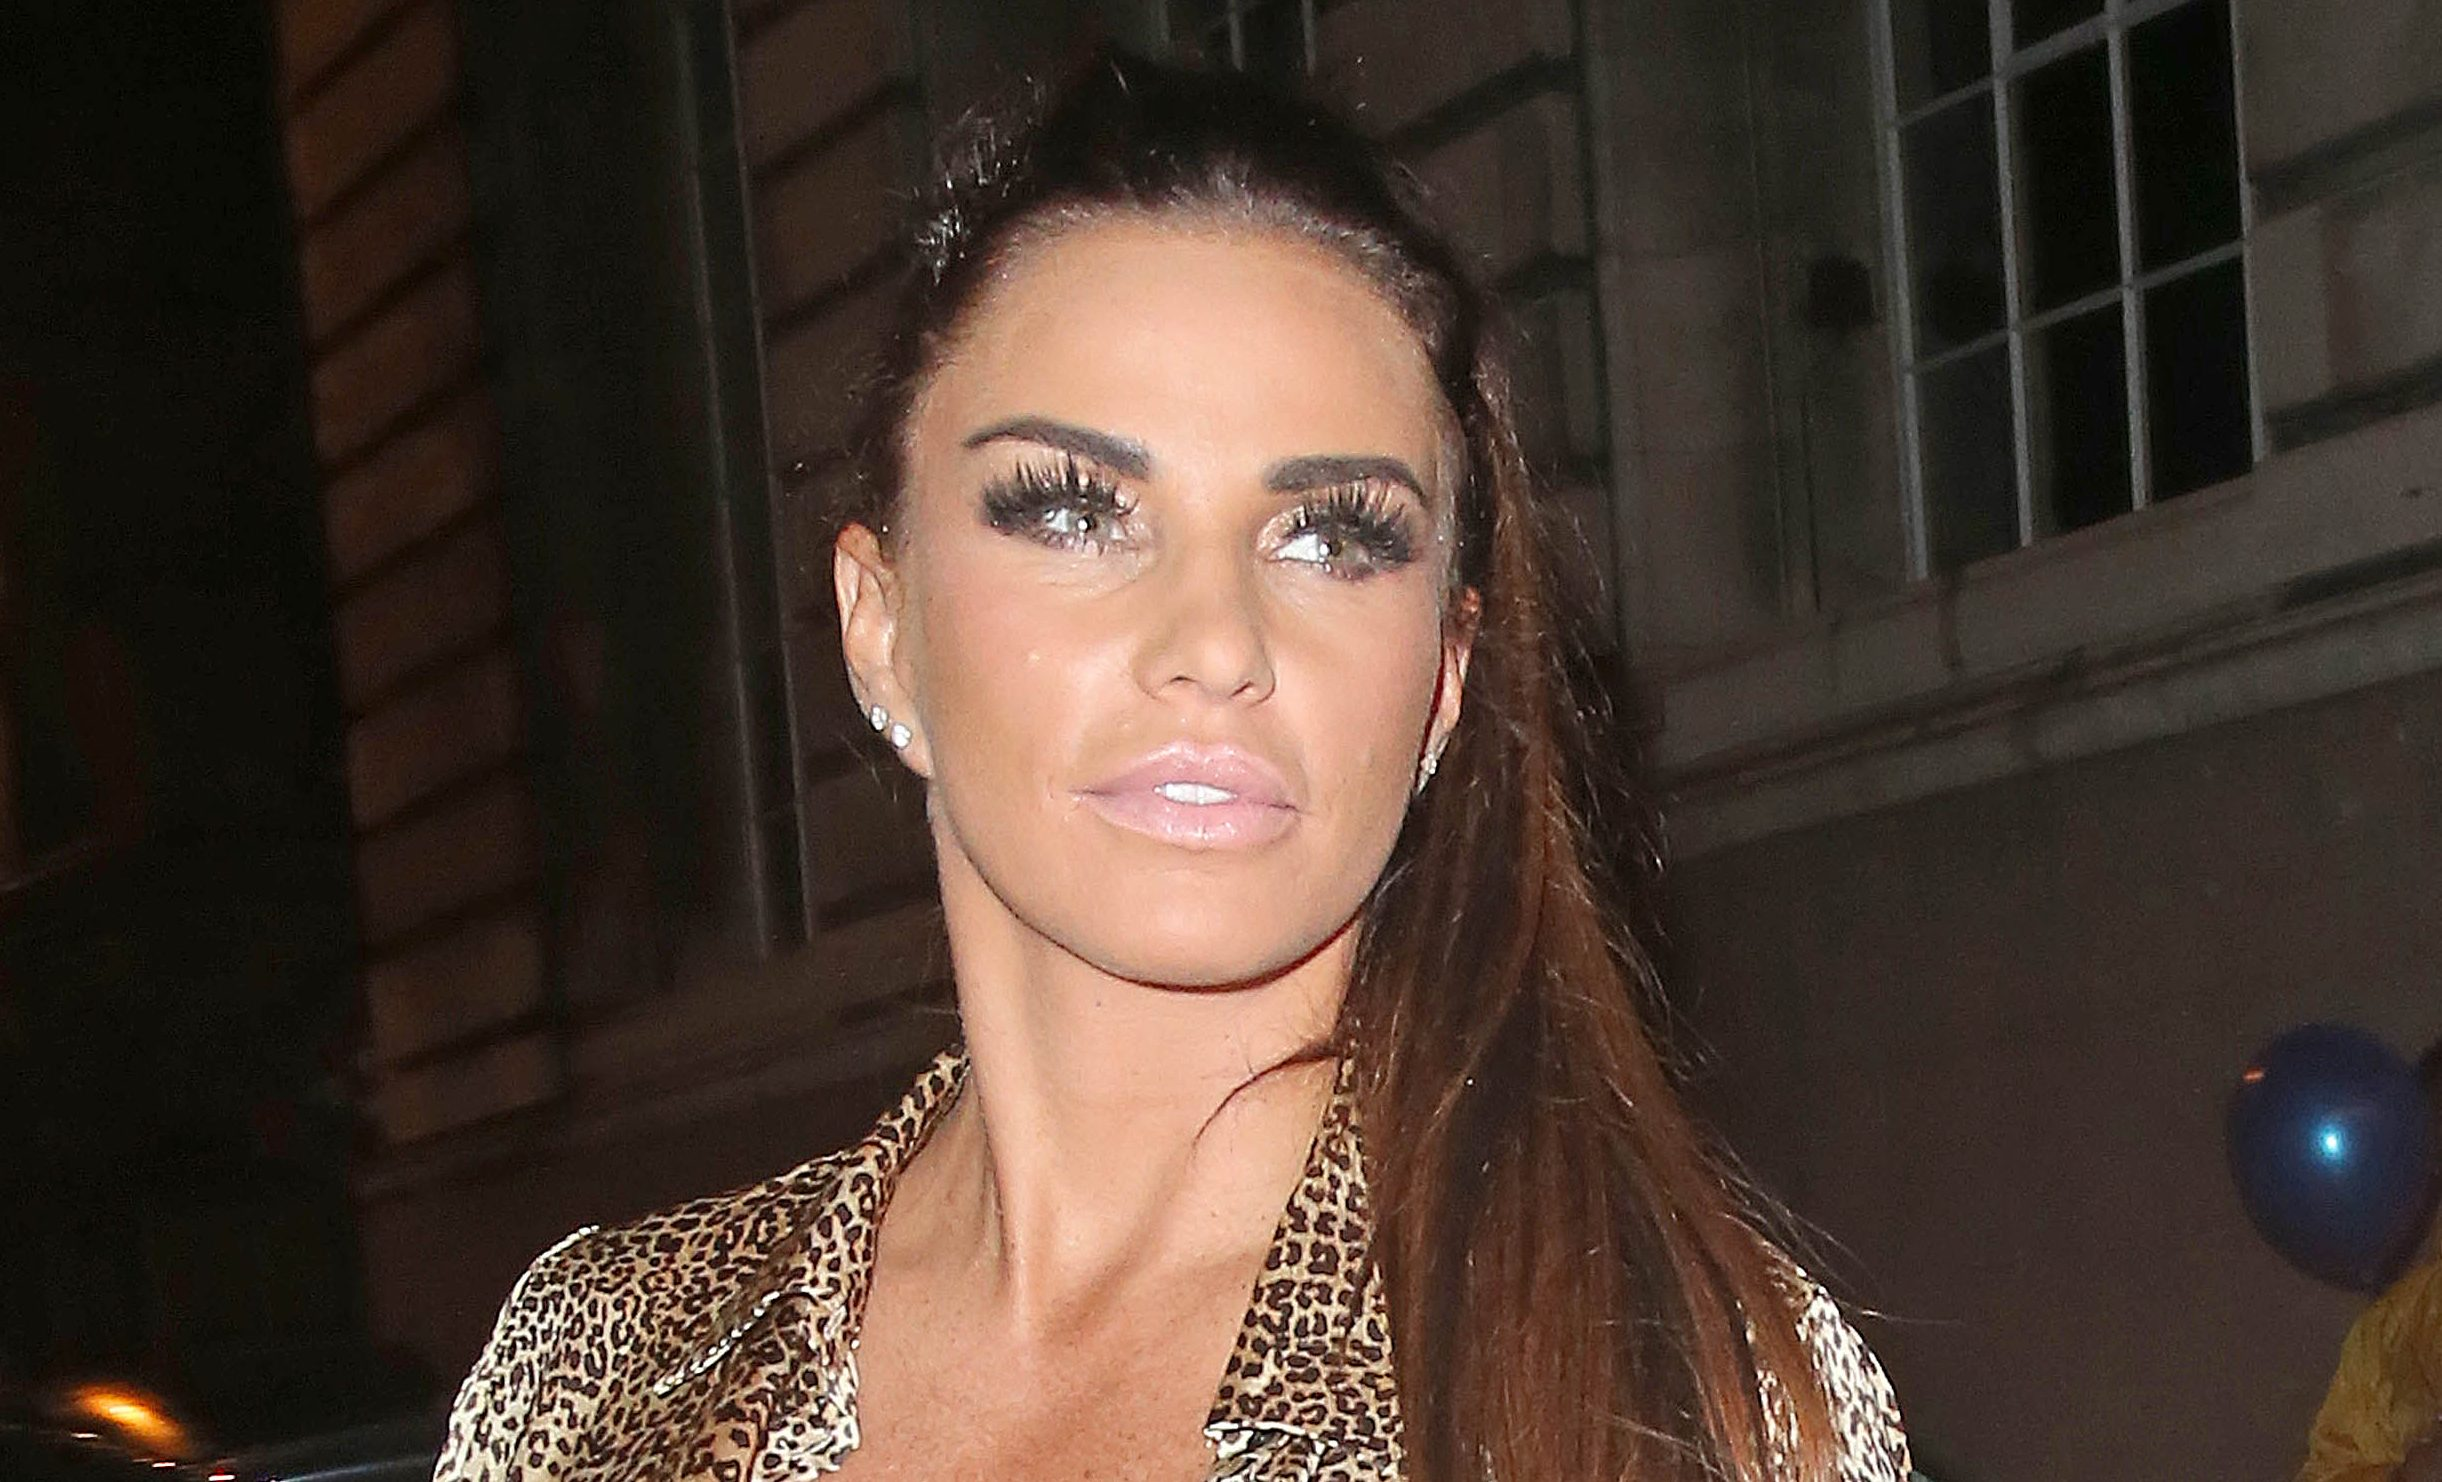 Katie Price admits to being 'annoyed' by son Harvey's snoring during Thailand break